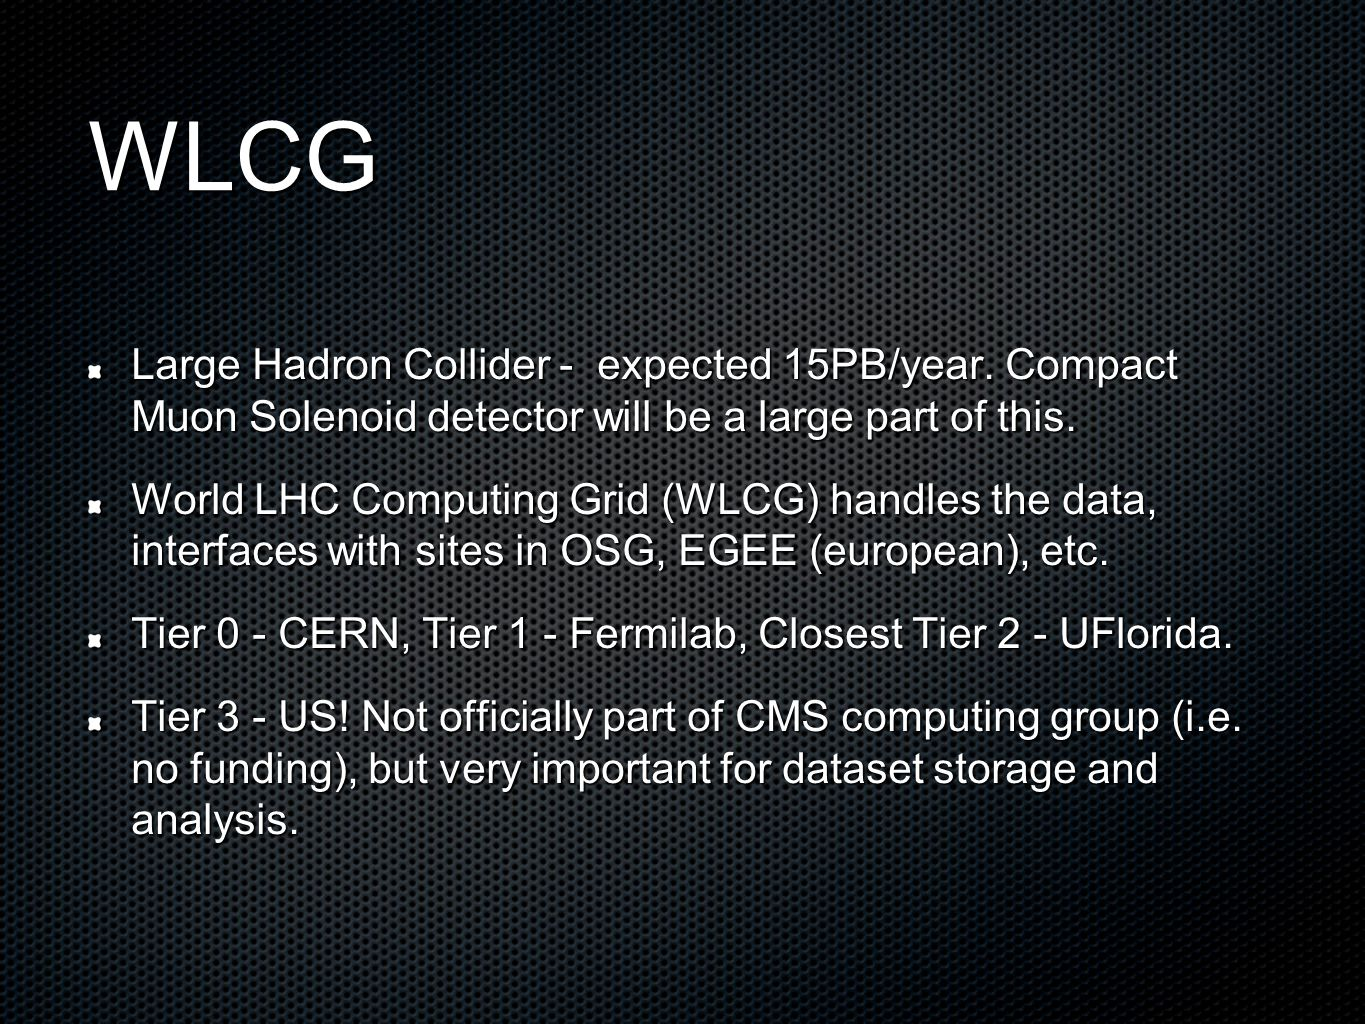 WLCG Large Hadron Collider - expected 15PB/year. Compact Muon Solenoid detector will be a large part of this. World LHC Computing Grid (WLCG) handles